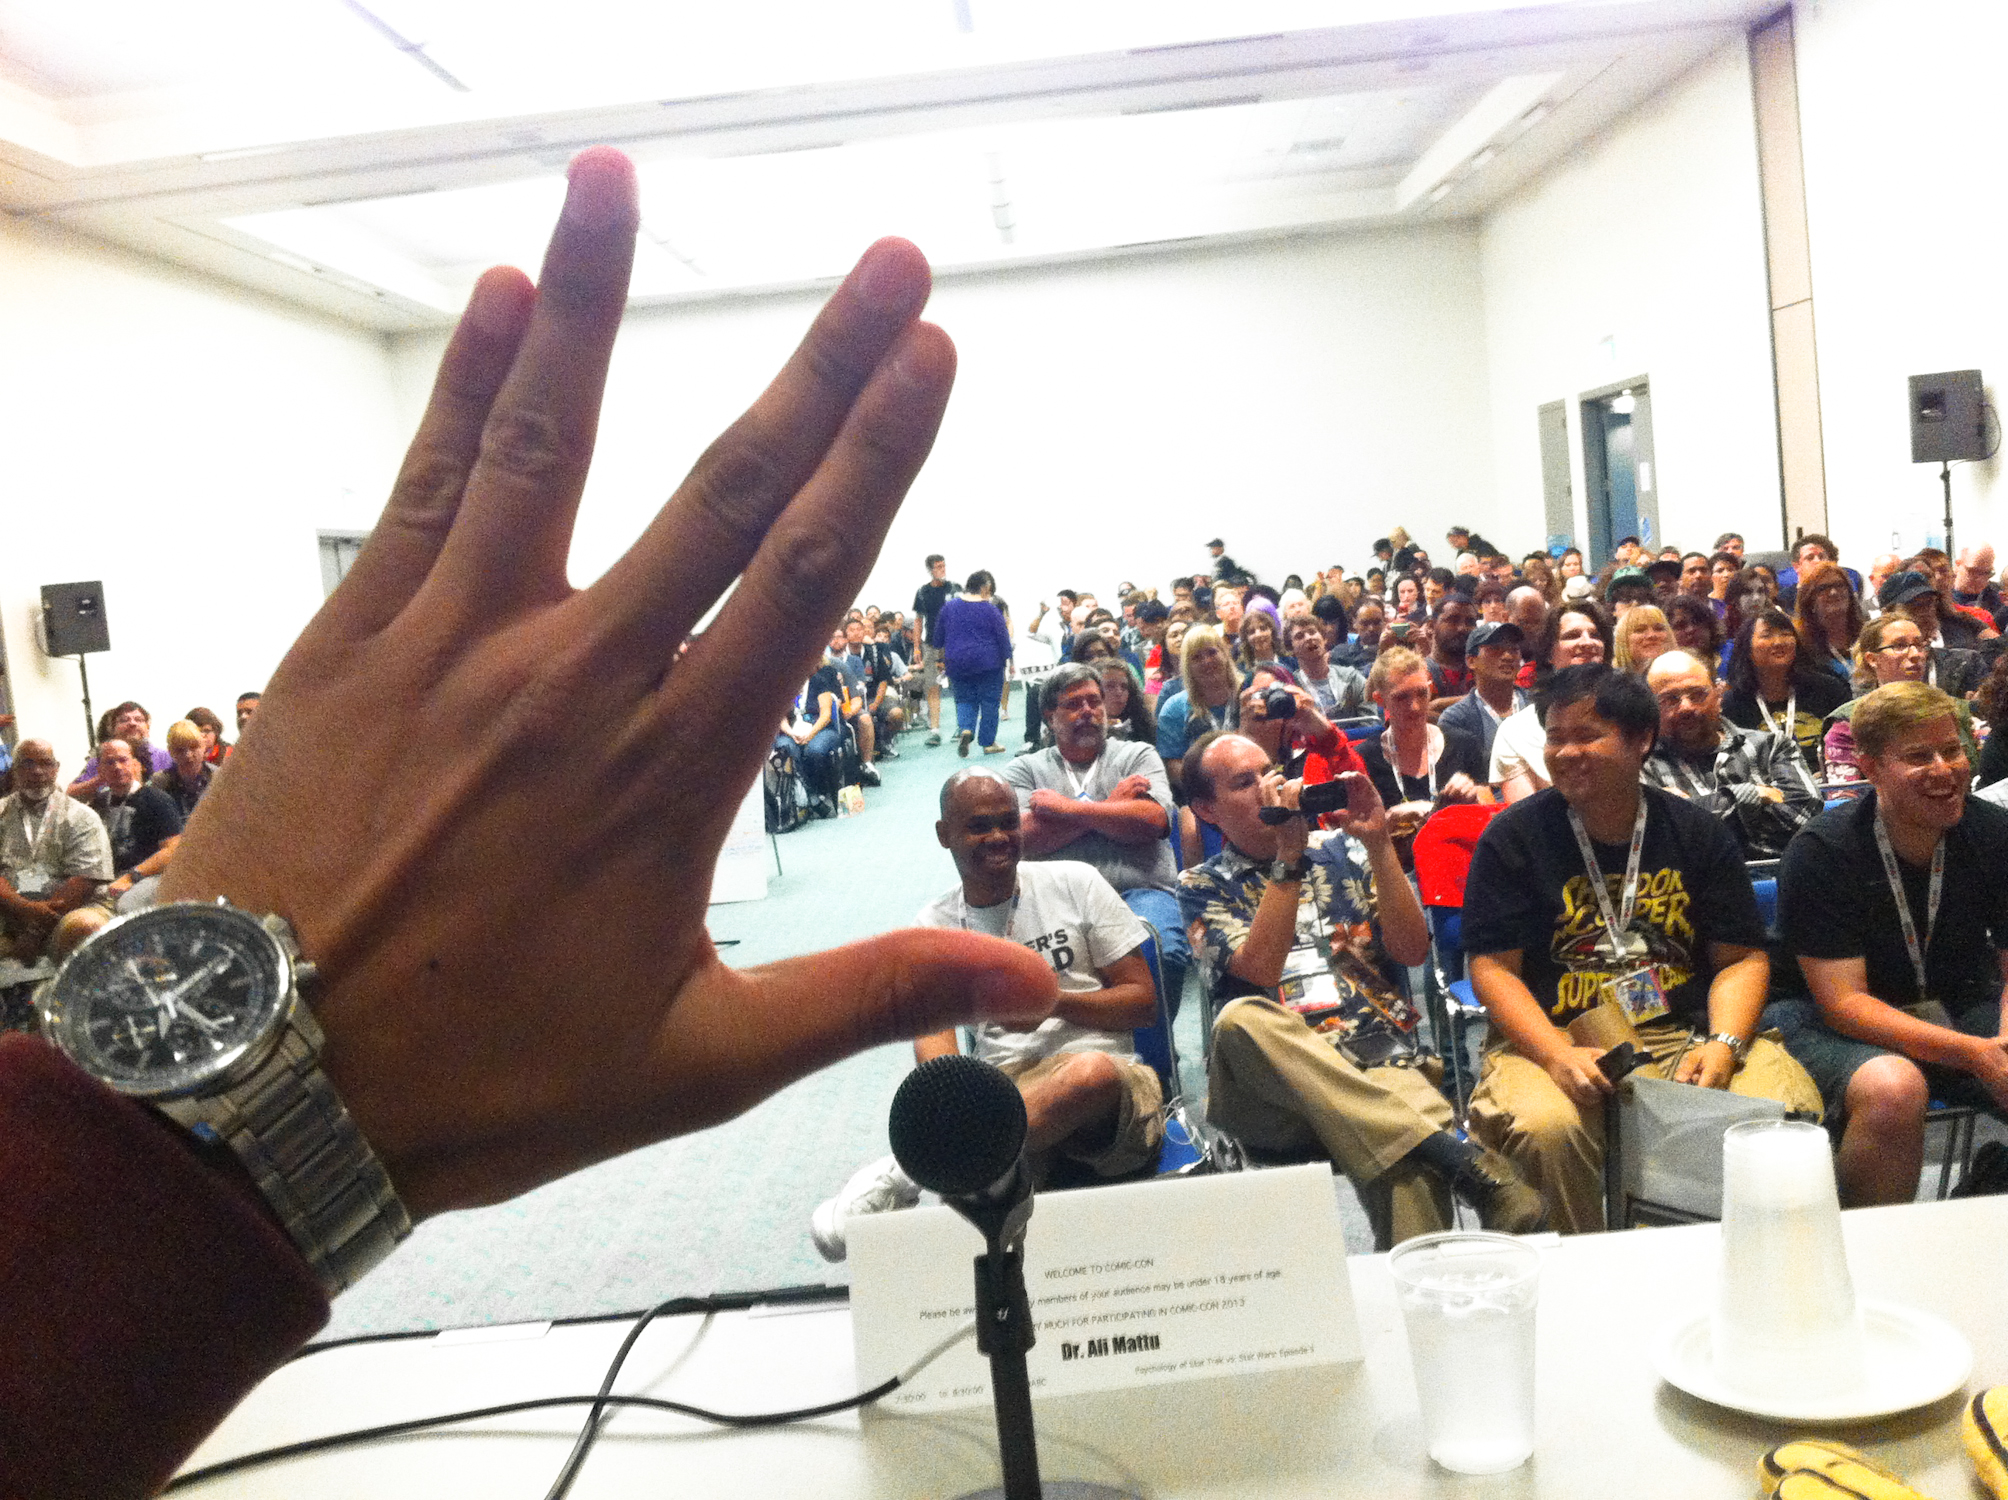 My view of from the panel.